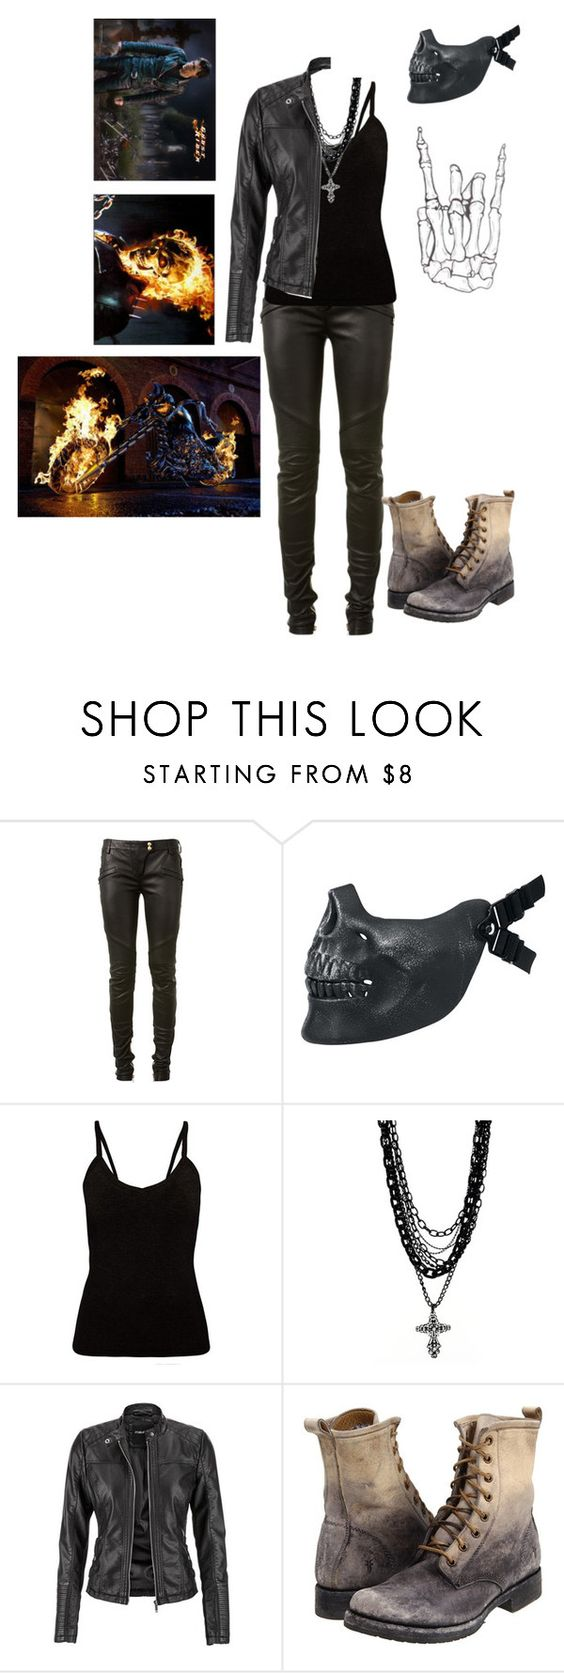 """Nikita Blaze (ghost rider daughter)"" by shinedownsiren ❤ liked on Polyvore featuring Balmain, Poizen Industries, Amrita Singh, maurices and Frye"